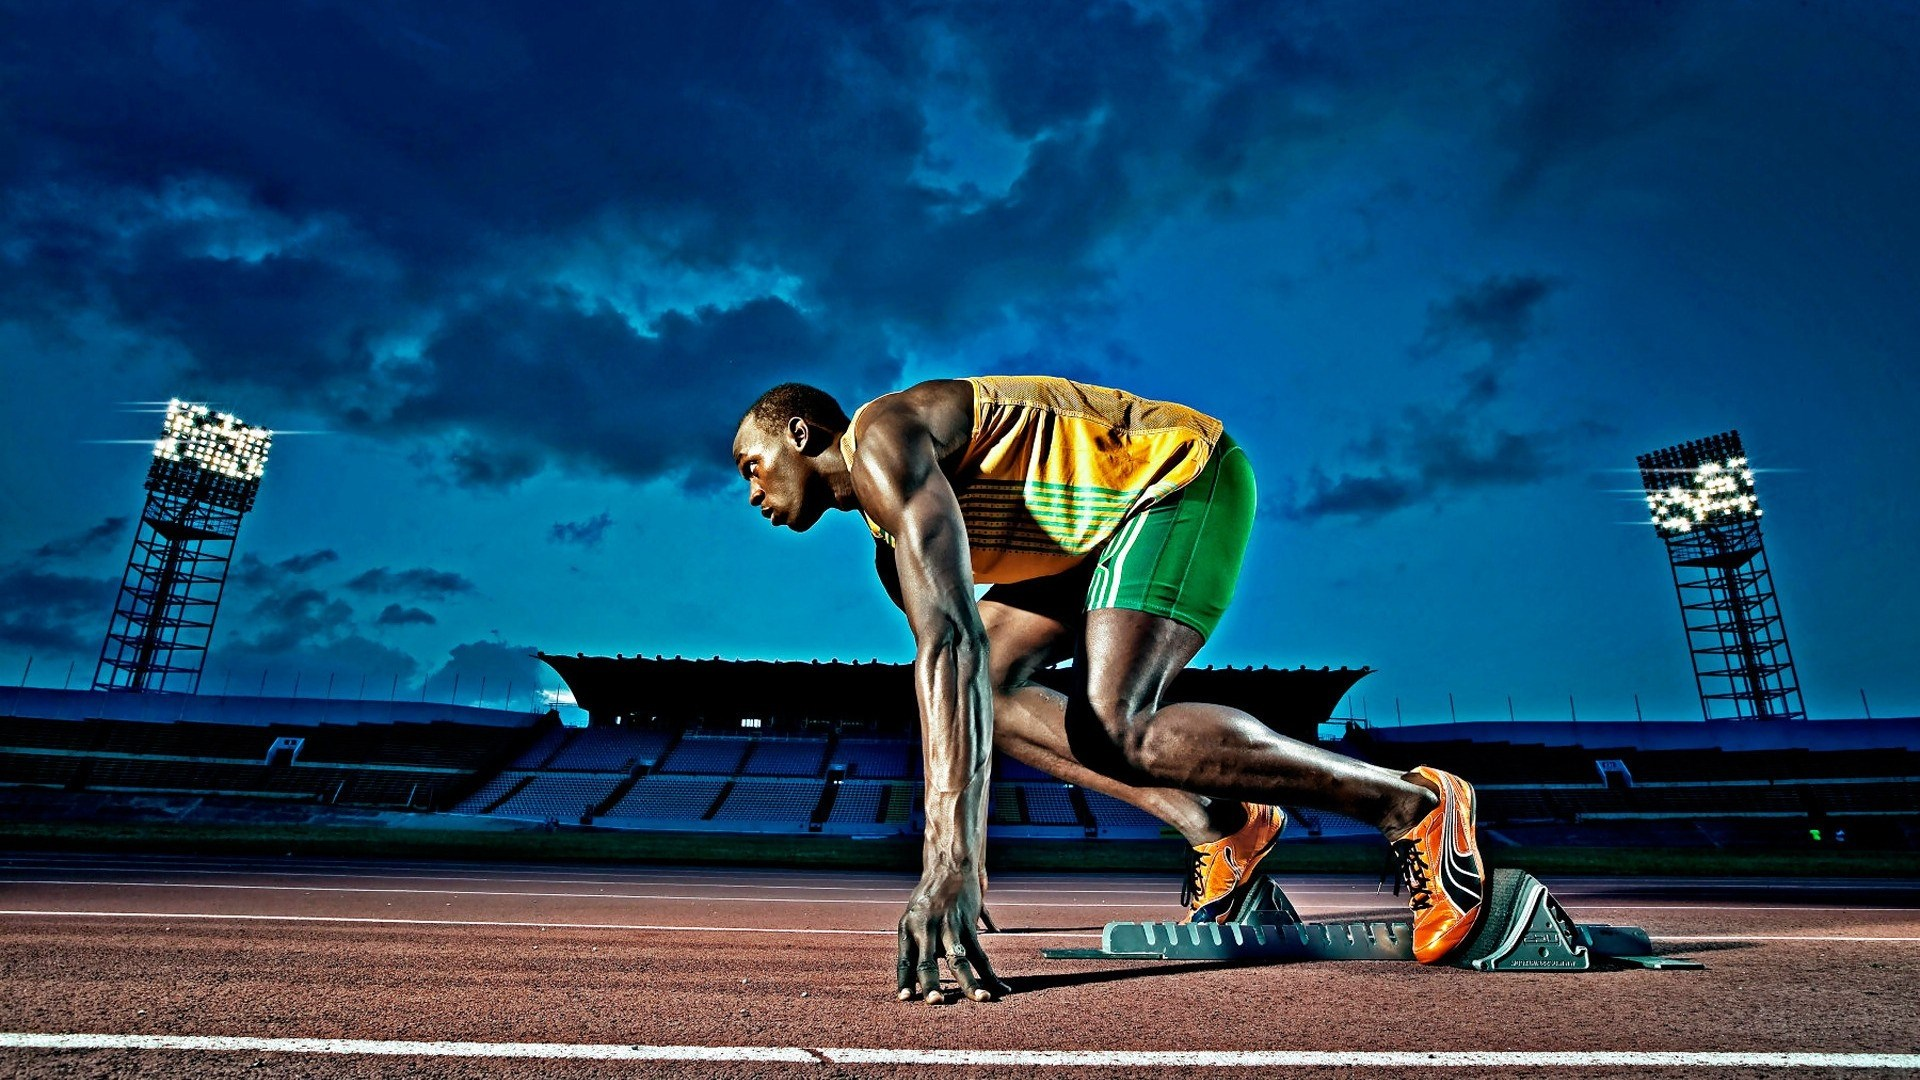 Are usain bolt s sprinting mechanics in need of an overhaul bret